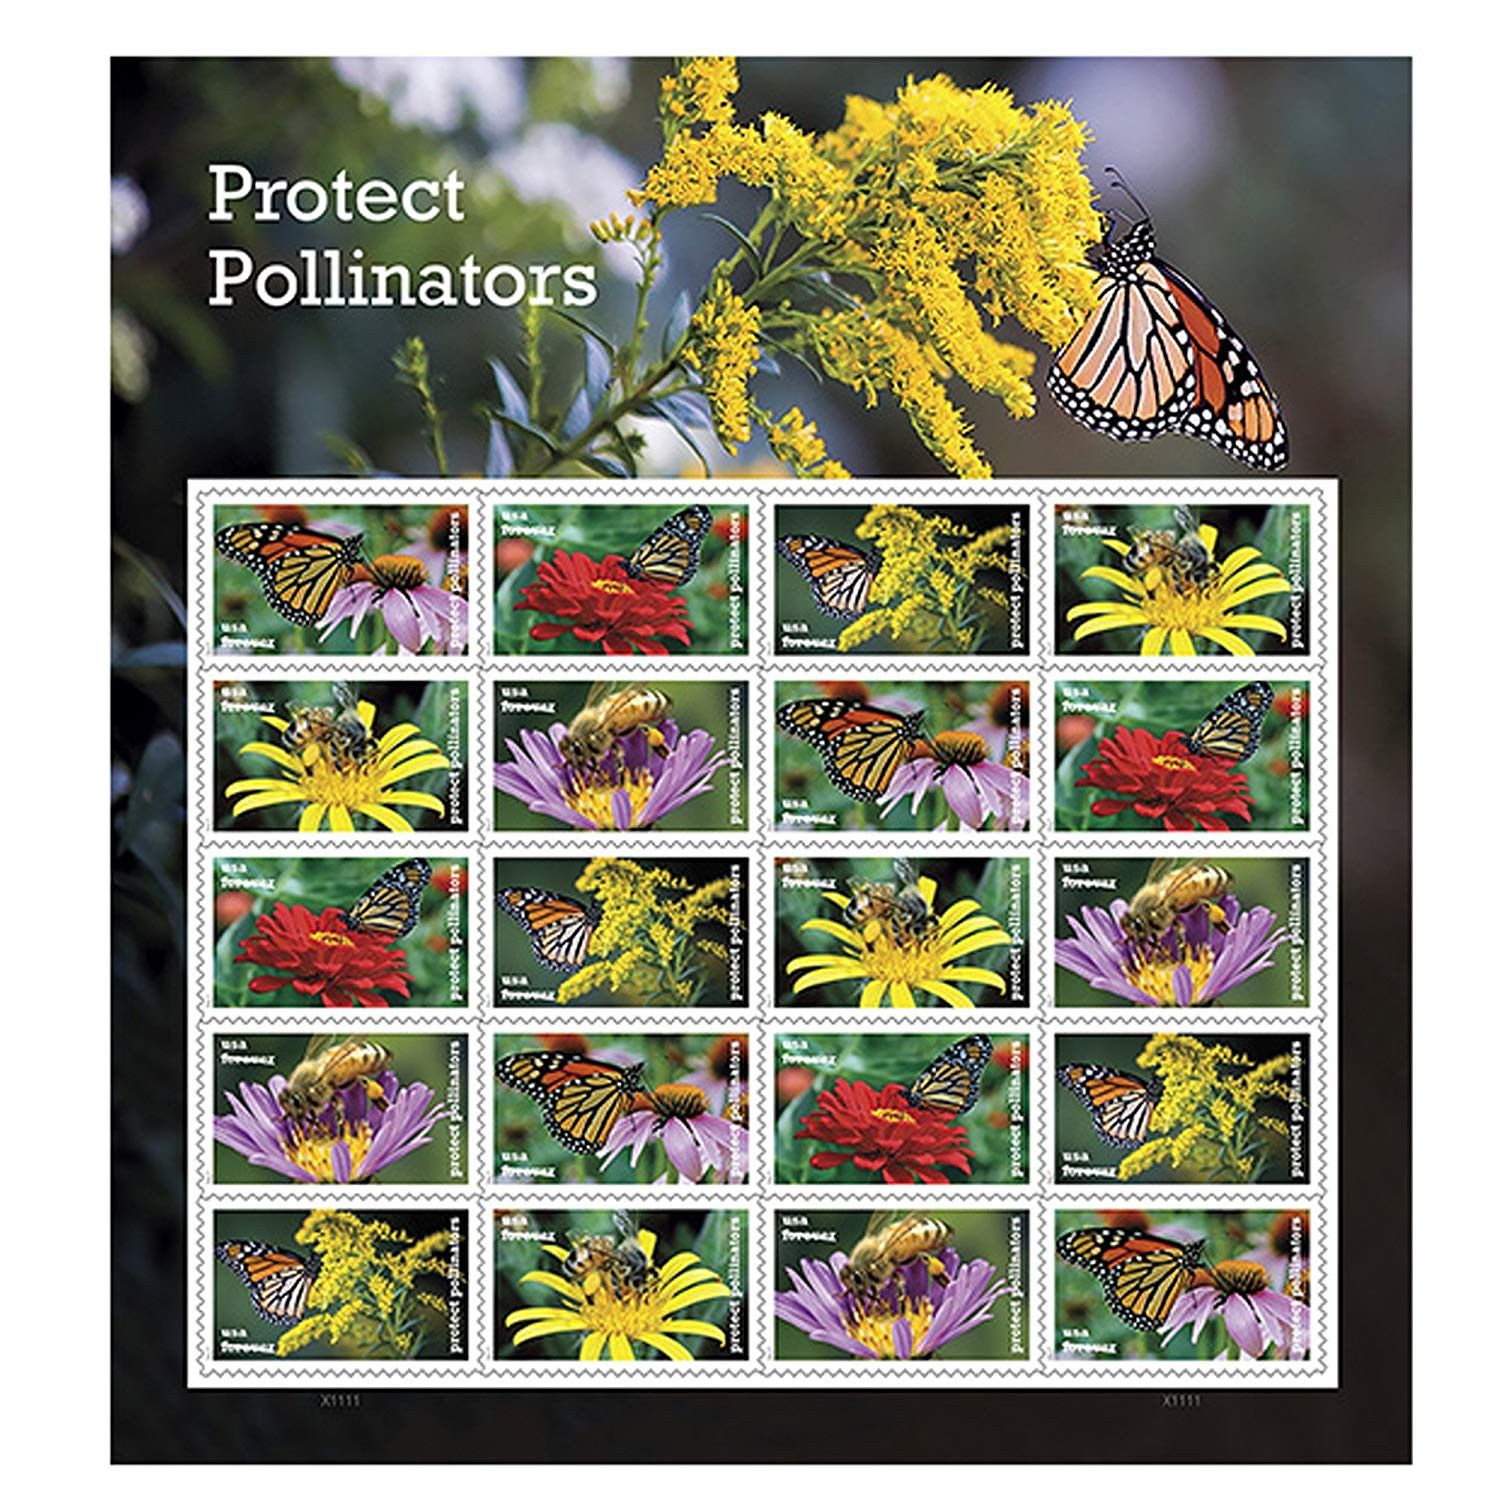 Amazon Protect Pollinators Sheet of 20 Forever USPS First Class one Ounce Postage Stamps Environment Wedding Party fice Products